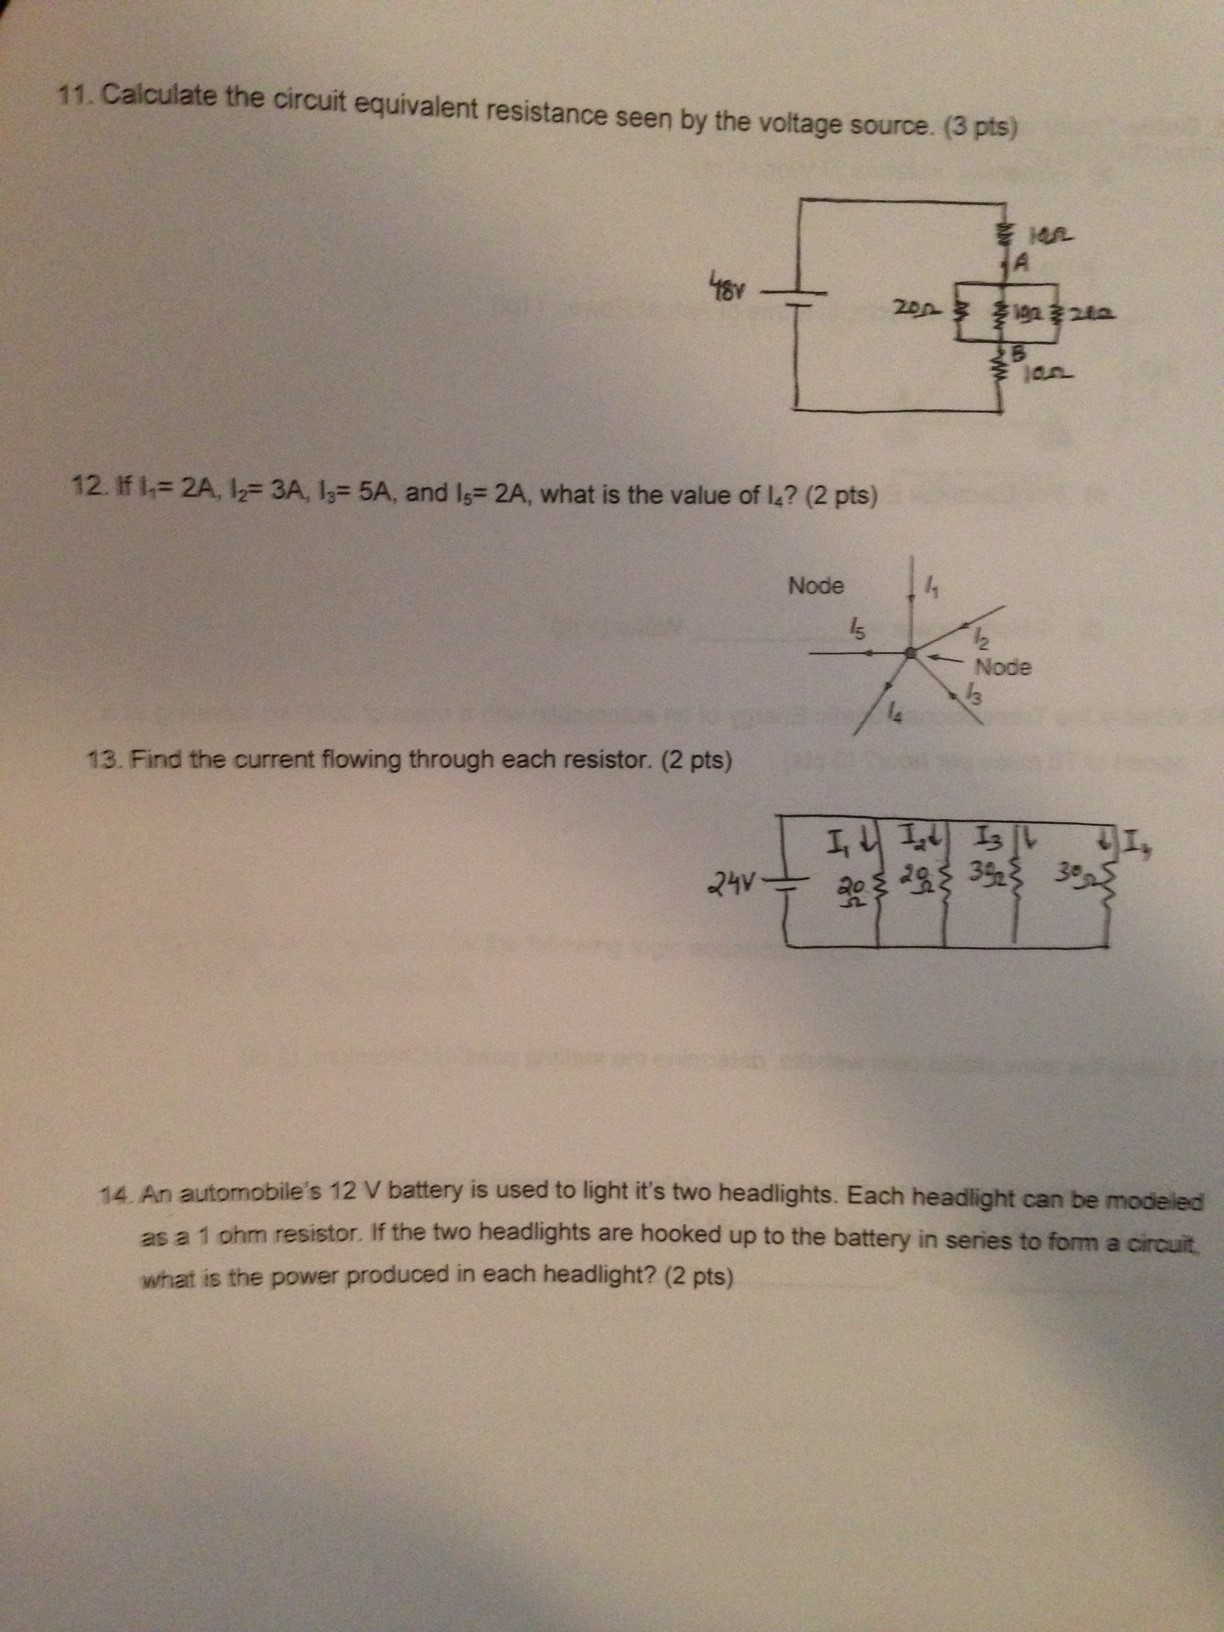 Solved Calculate The Circuit Equivalent Resistance Seen B Series With A Voltage Source Such As Battery Or In This See More Show Transcribed Image Text By If I1 2a L2 3a L3 5a And L5